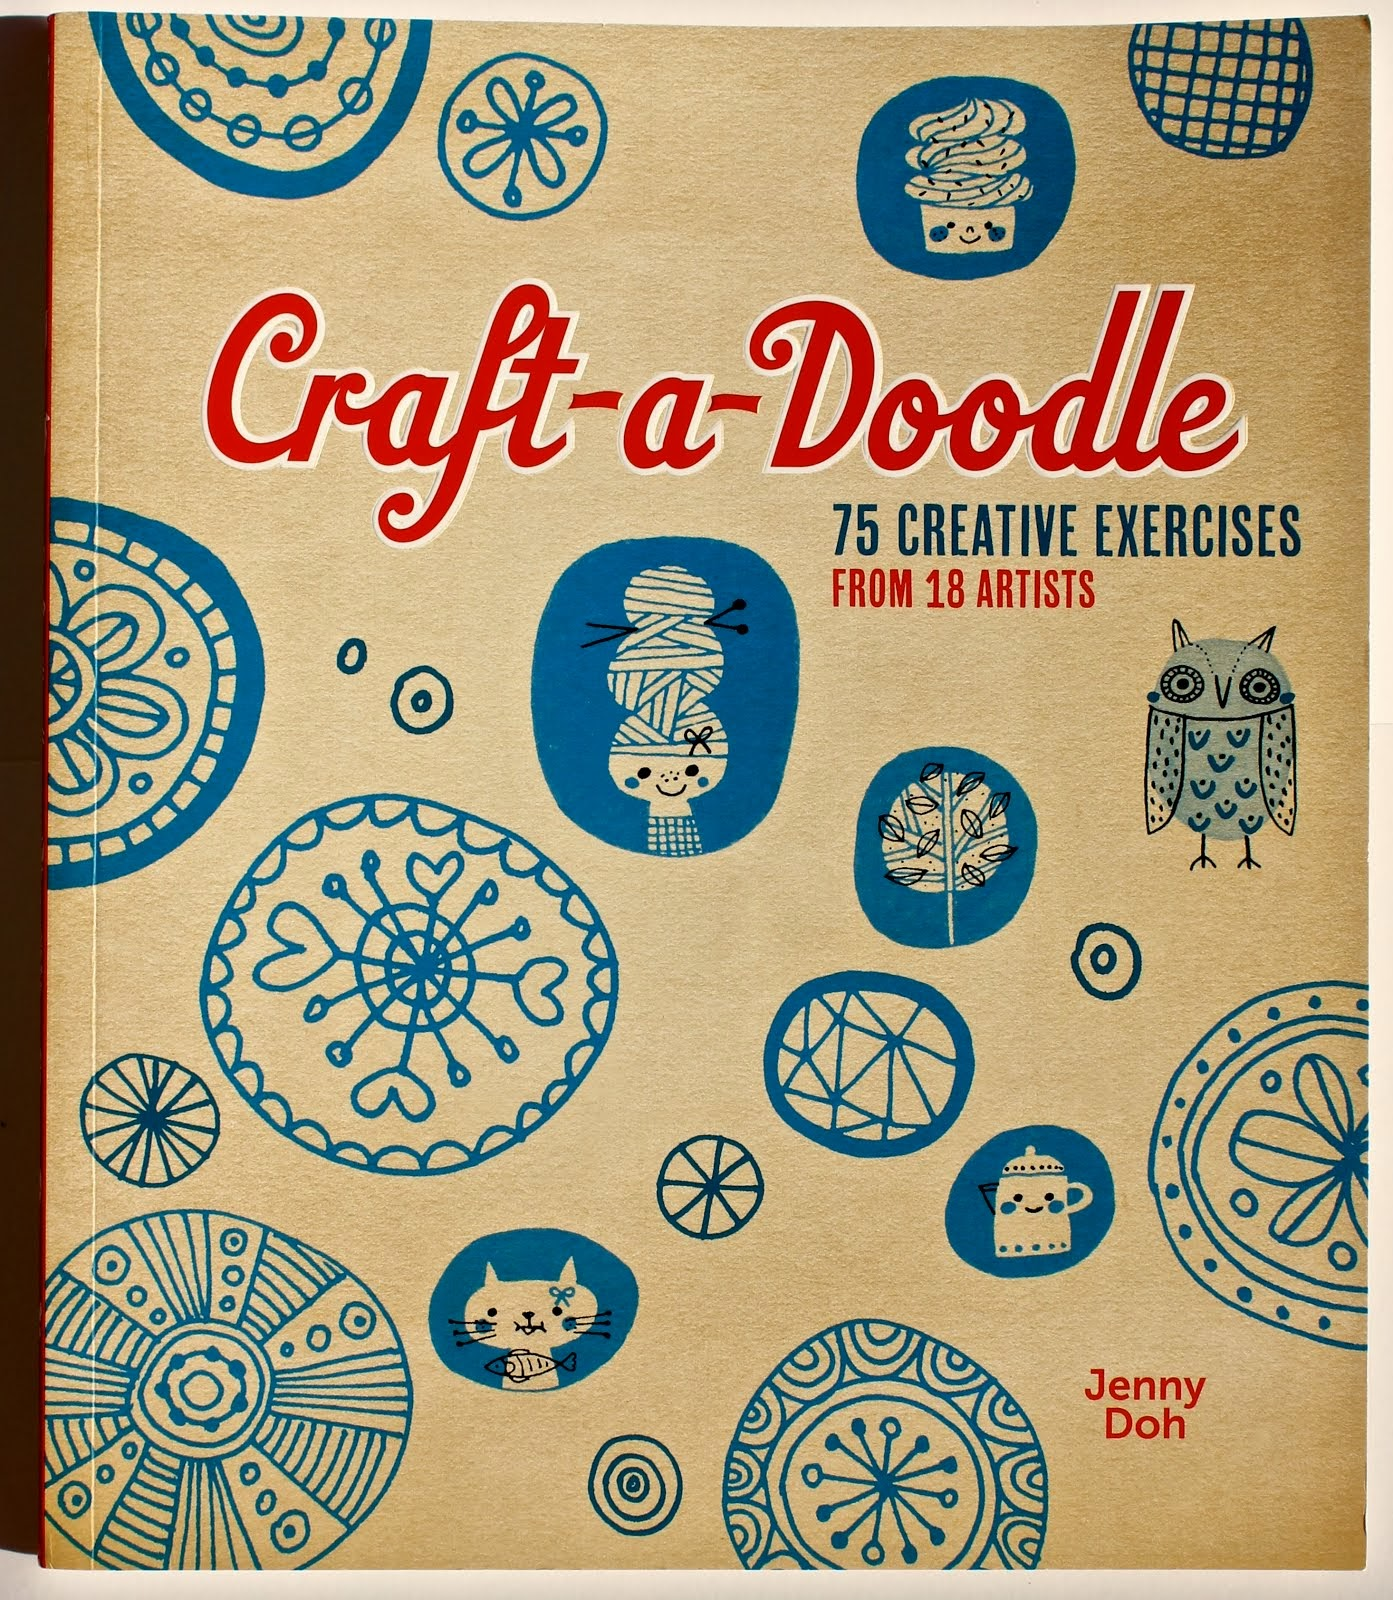 CONTRIBUTING ARTIST IN CRAFT-A-DOODLE, by JENNY DOH, AUGUST 2013